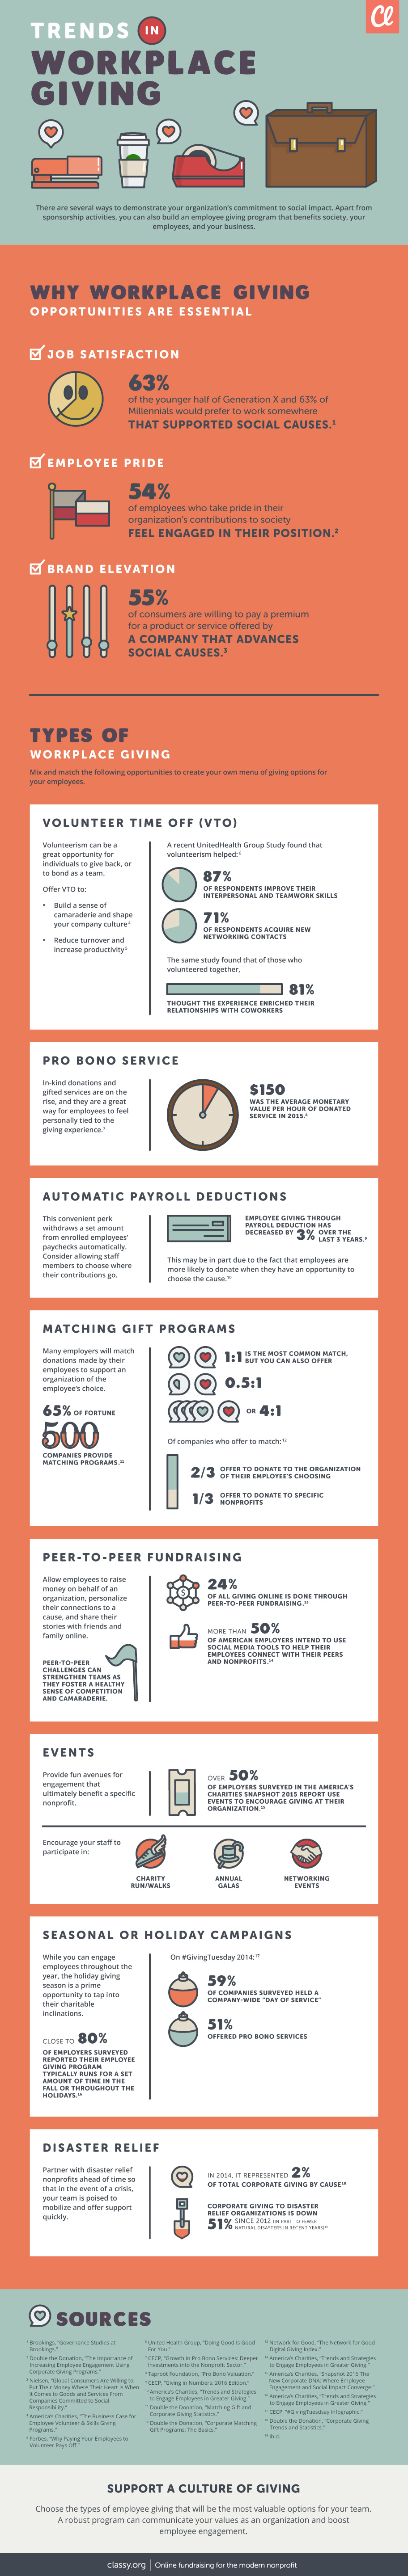 Infographic on trends in workplace giving